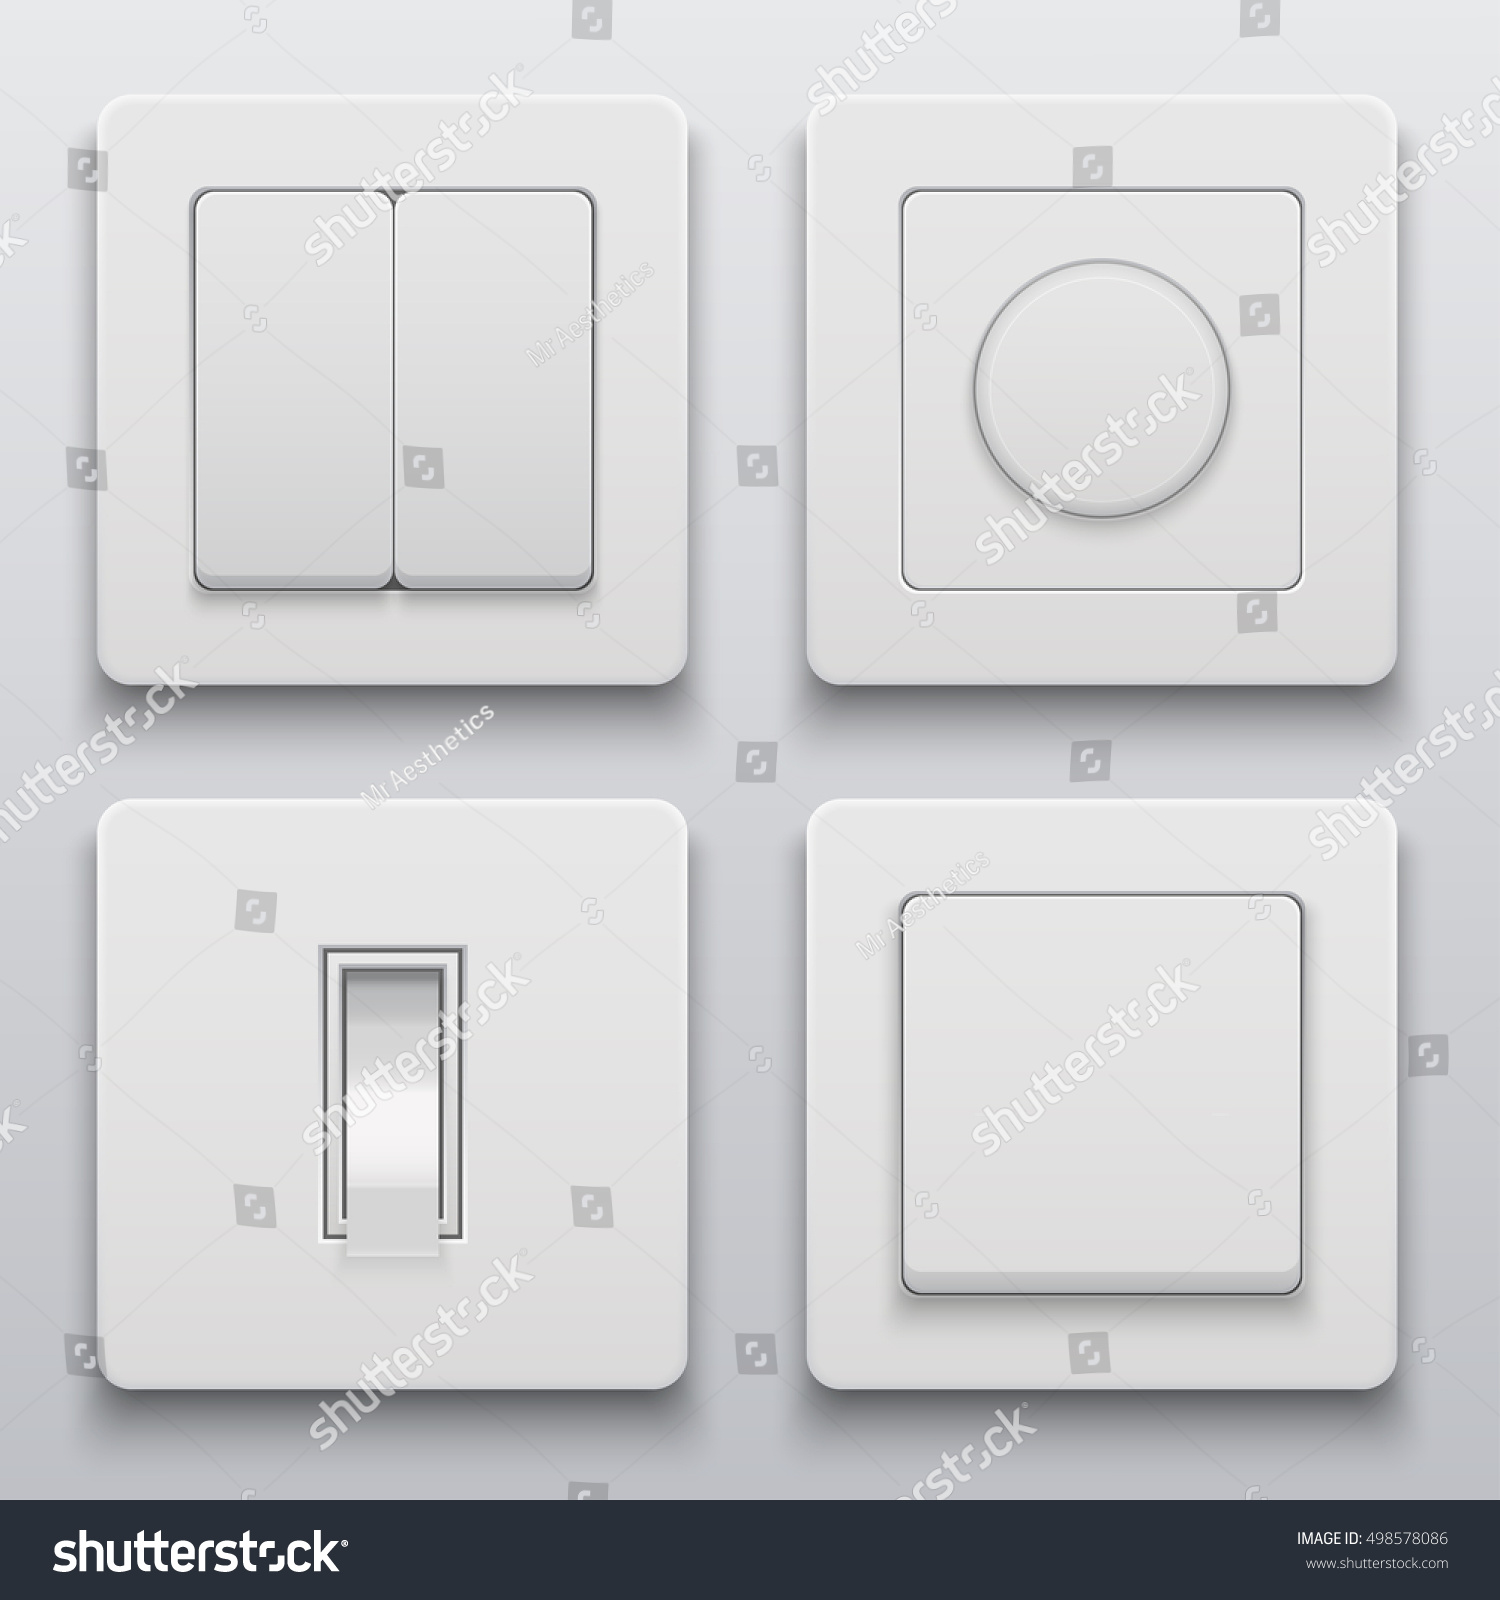 Vector Modern Light Switch Icons Set Stock Vector (Royalty Free ...